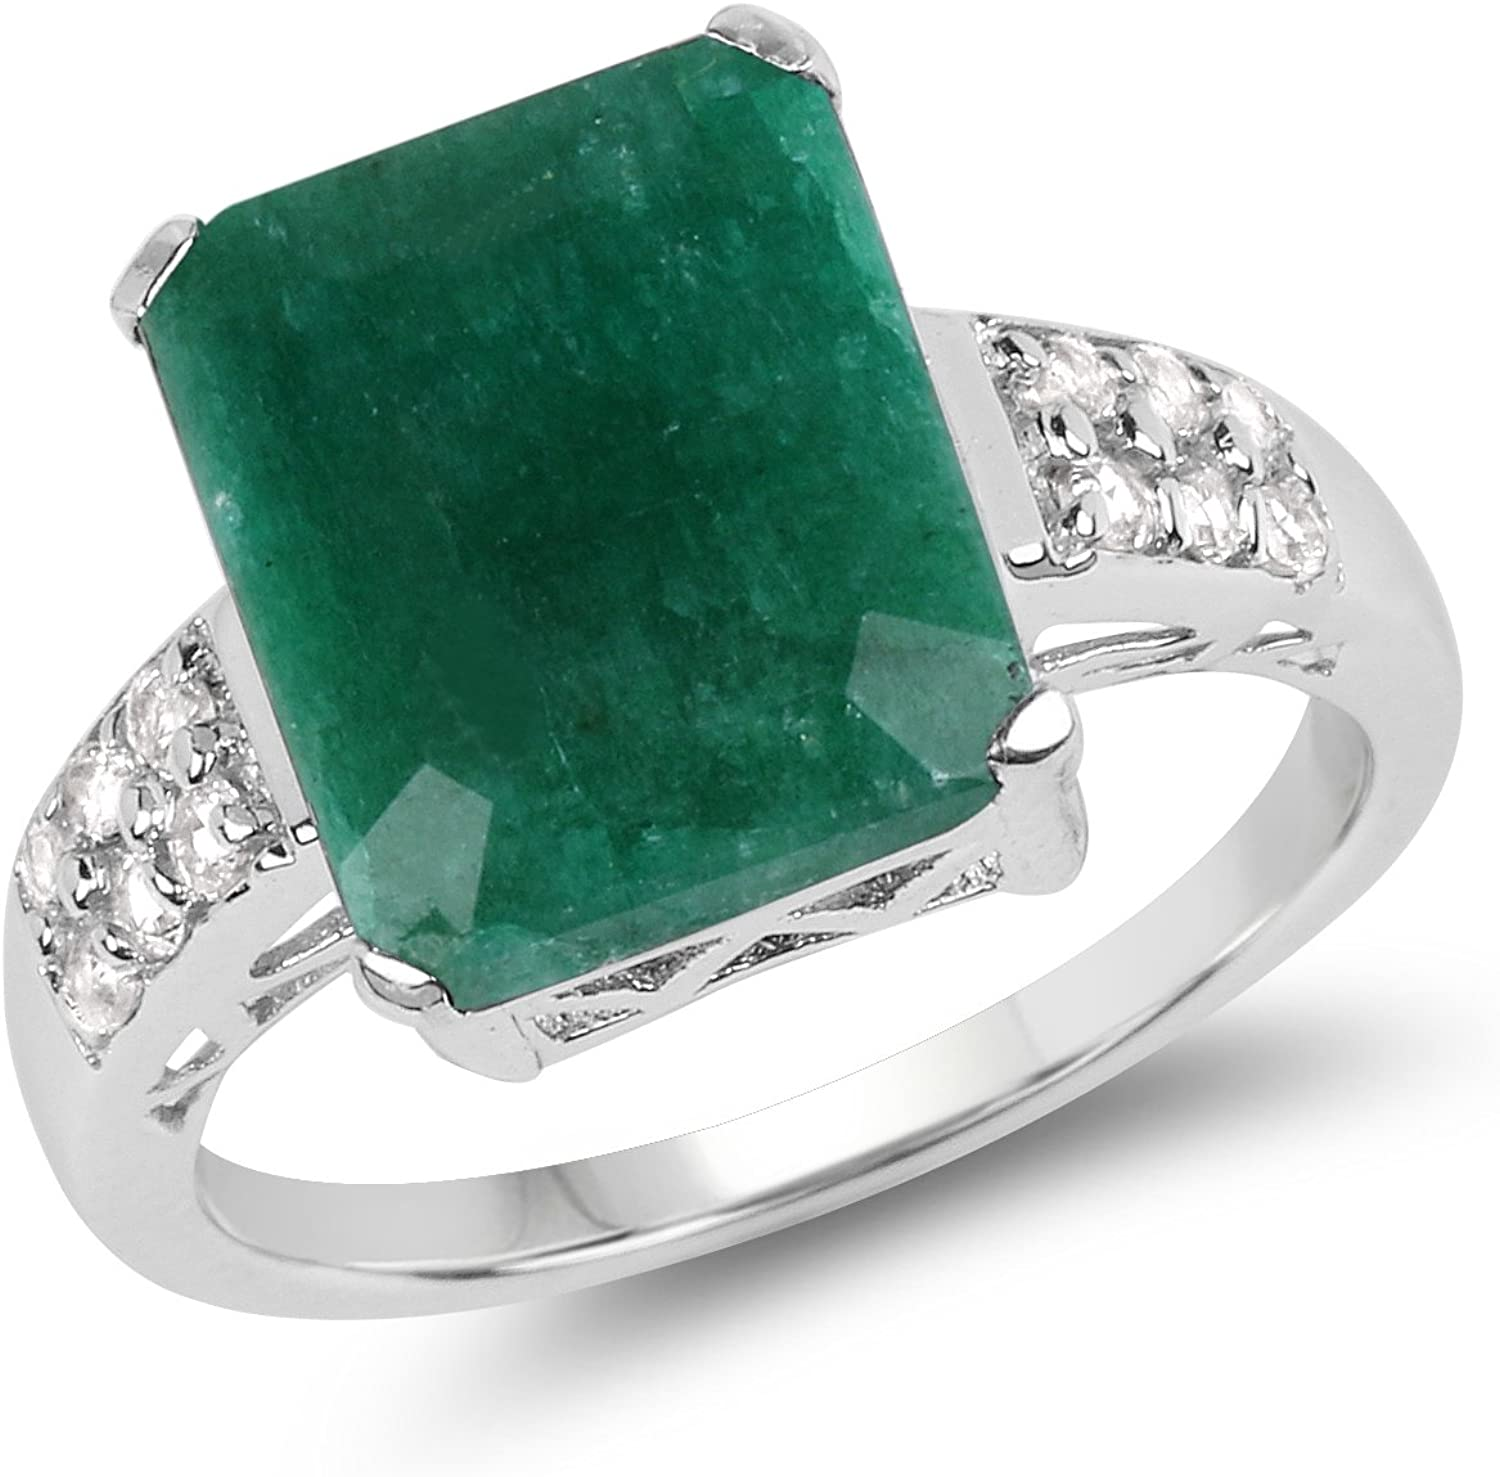 6.54 Carat Dyed Emerald and Daily bargain sale White .925 Sterling Bargain sale Topaz Rin Silver